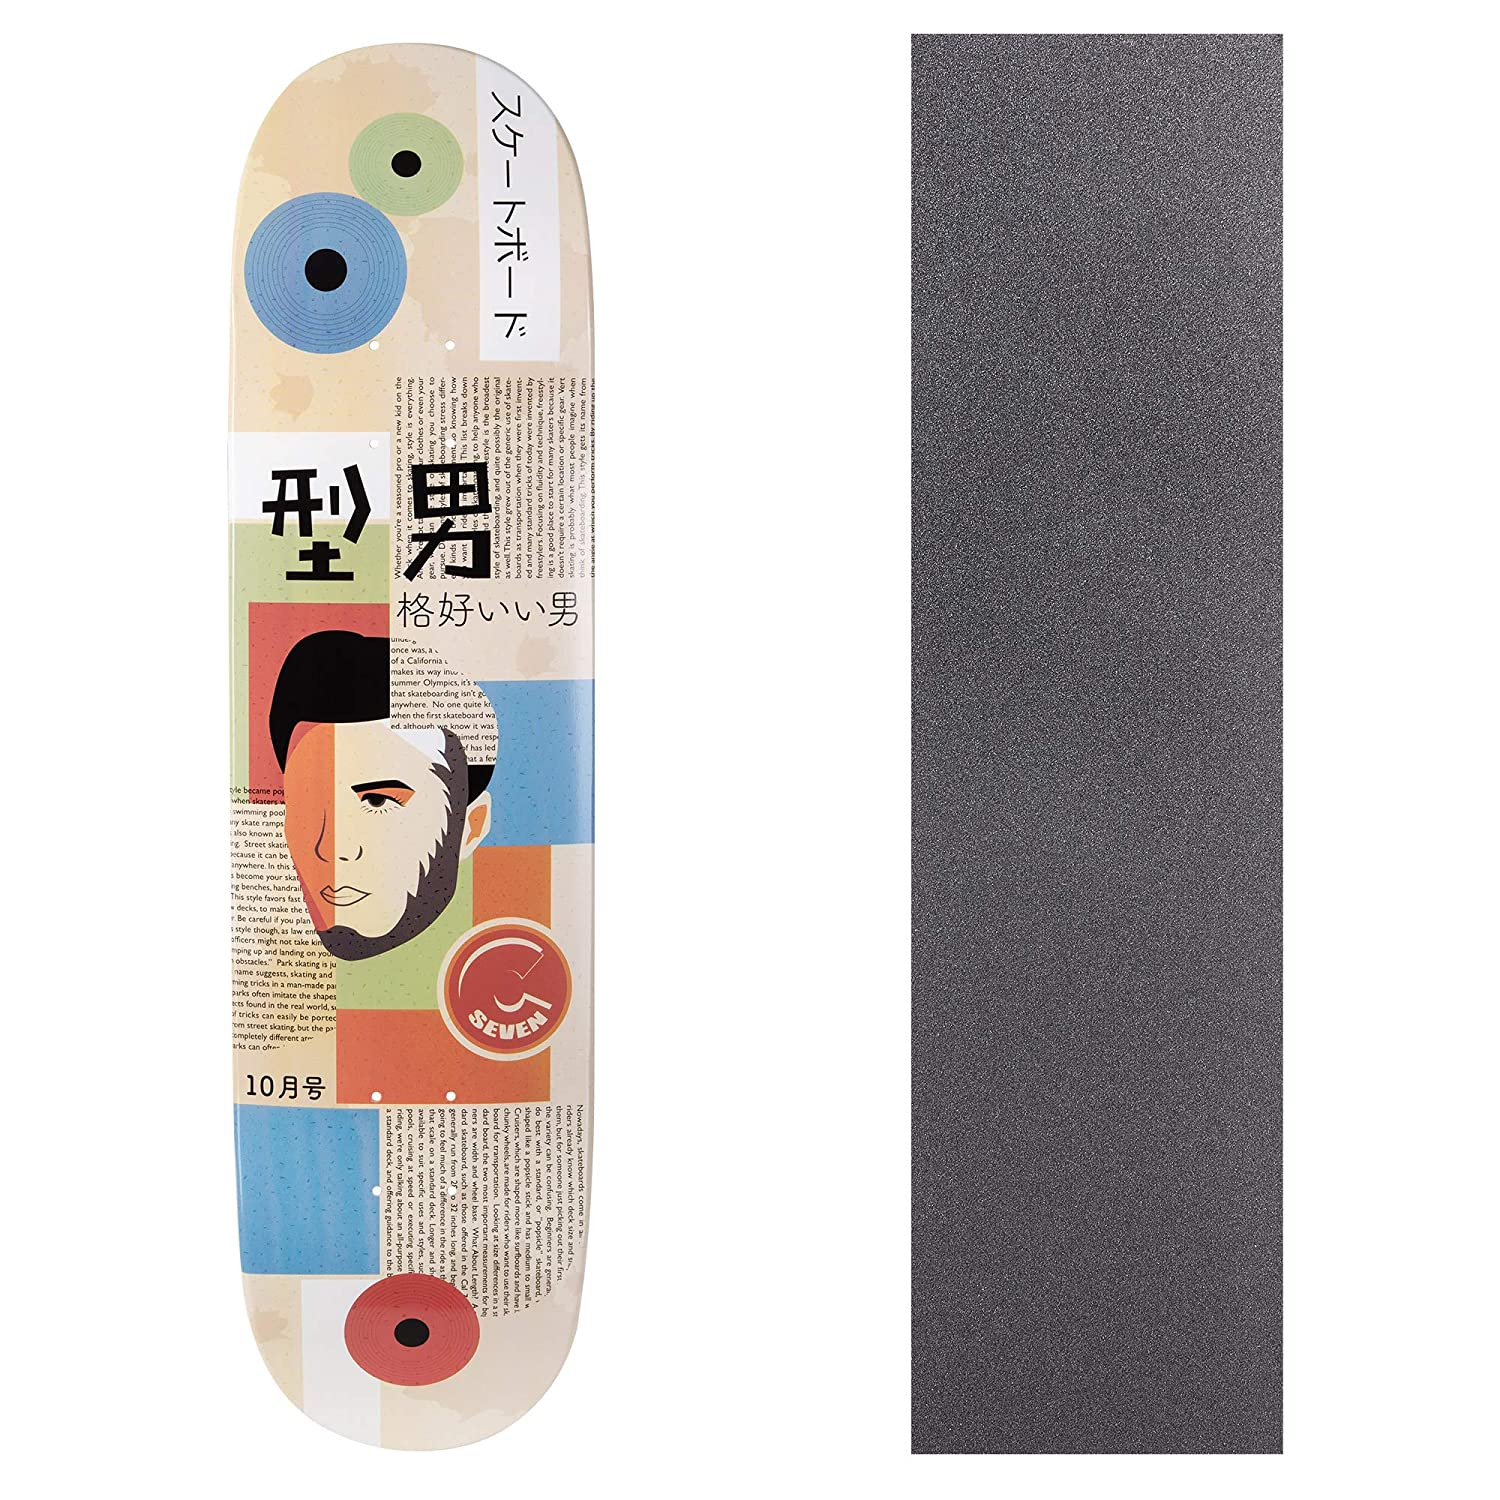 Cal 7 Graphic Skateboard Deck with Grip Tape | Canadian Maple | 8.0 and 8.25 Inch